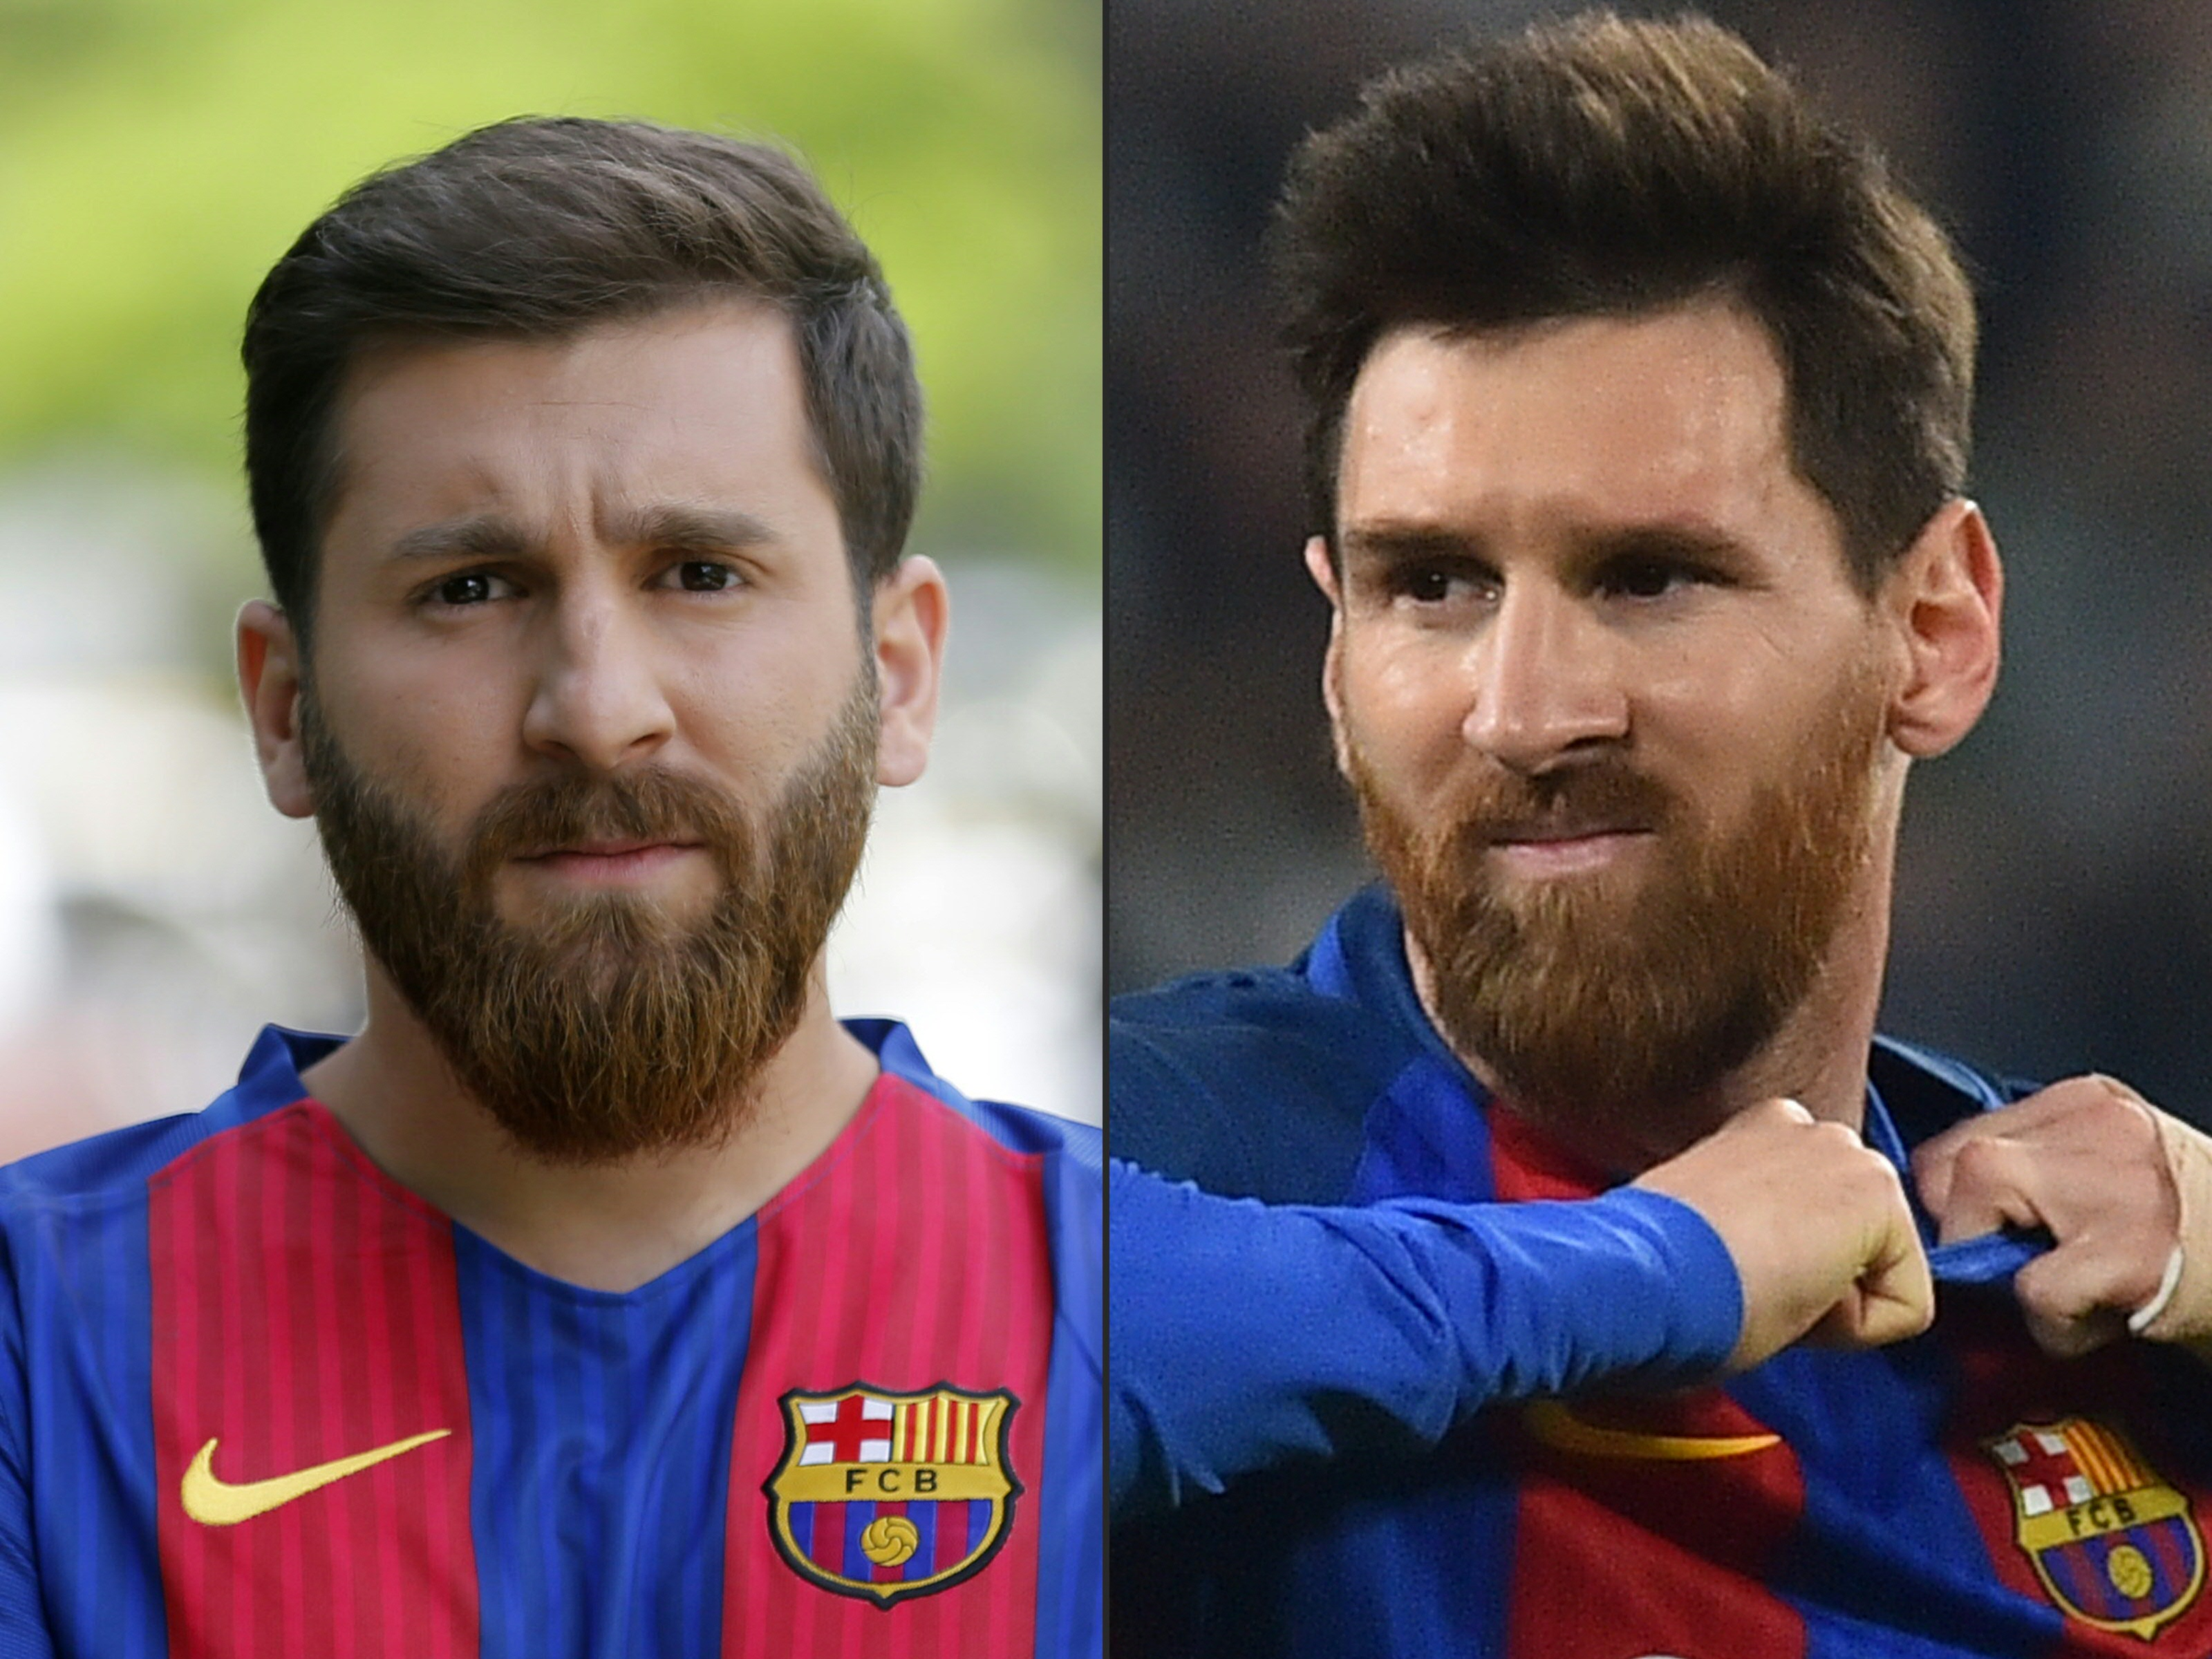 Guy Who Looks Exactly Like Lionel Messi Almost Arrested For Disrupting Public Order - 3